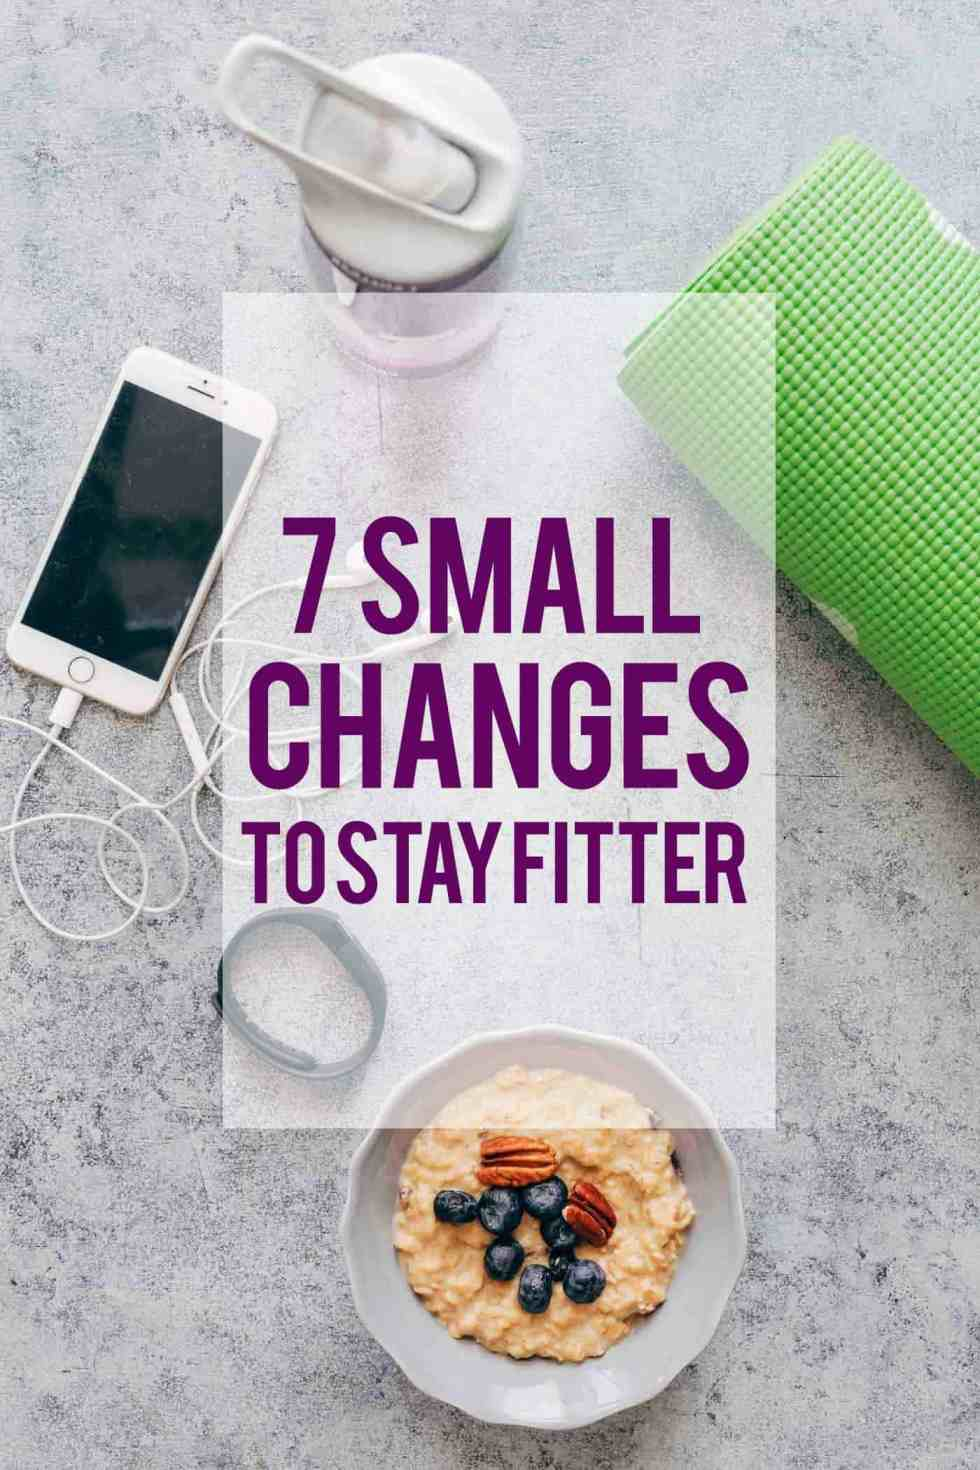 These 7 small lifestyle changes to stay fit can be easily incorporated in your every day life and can help you become healthier without any big commitments.